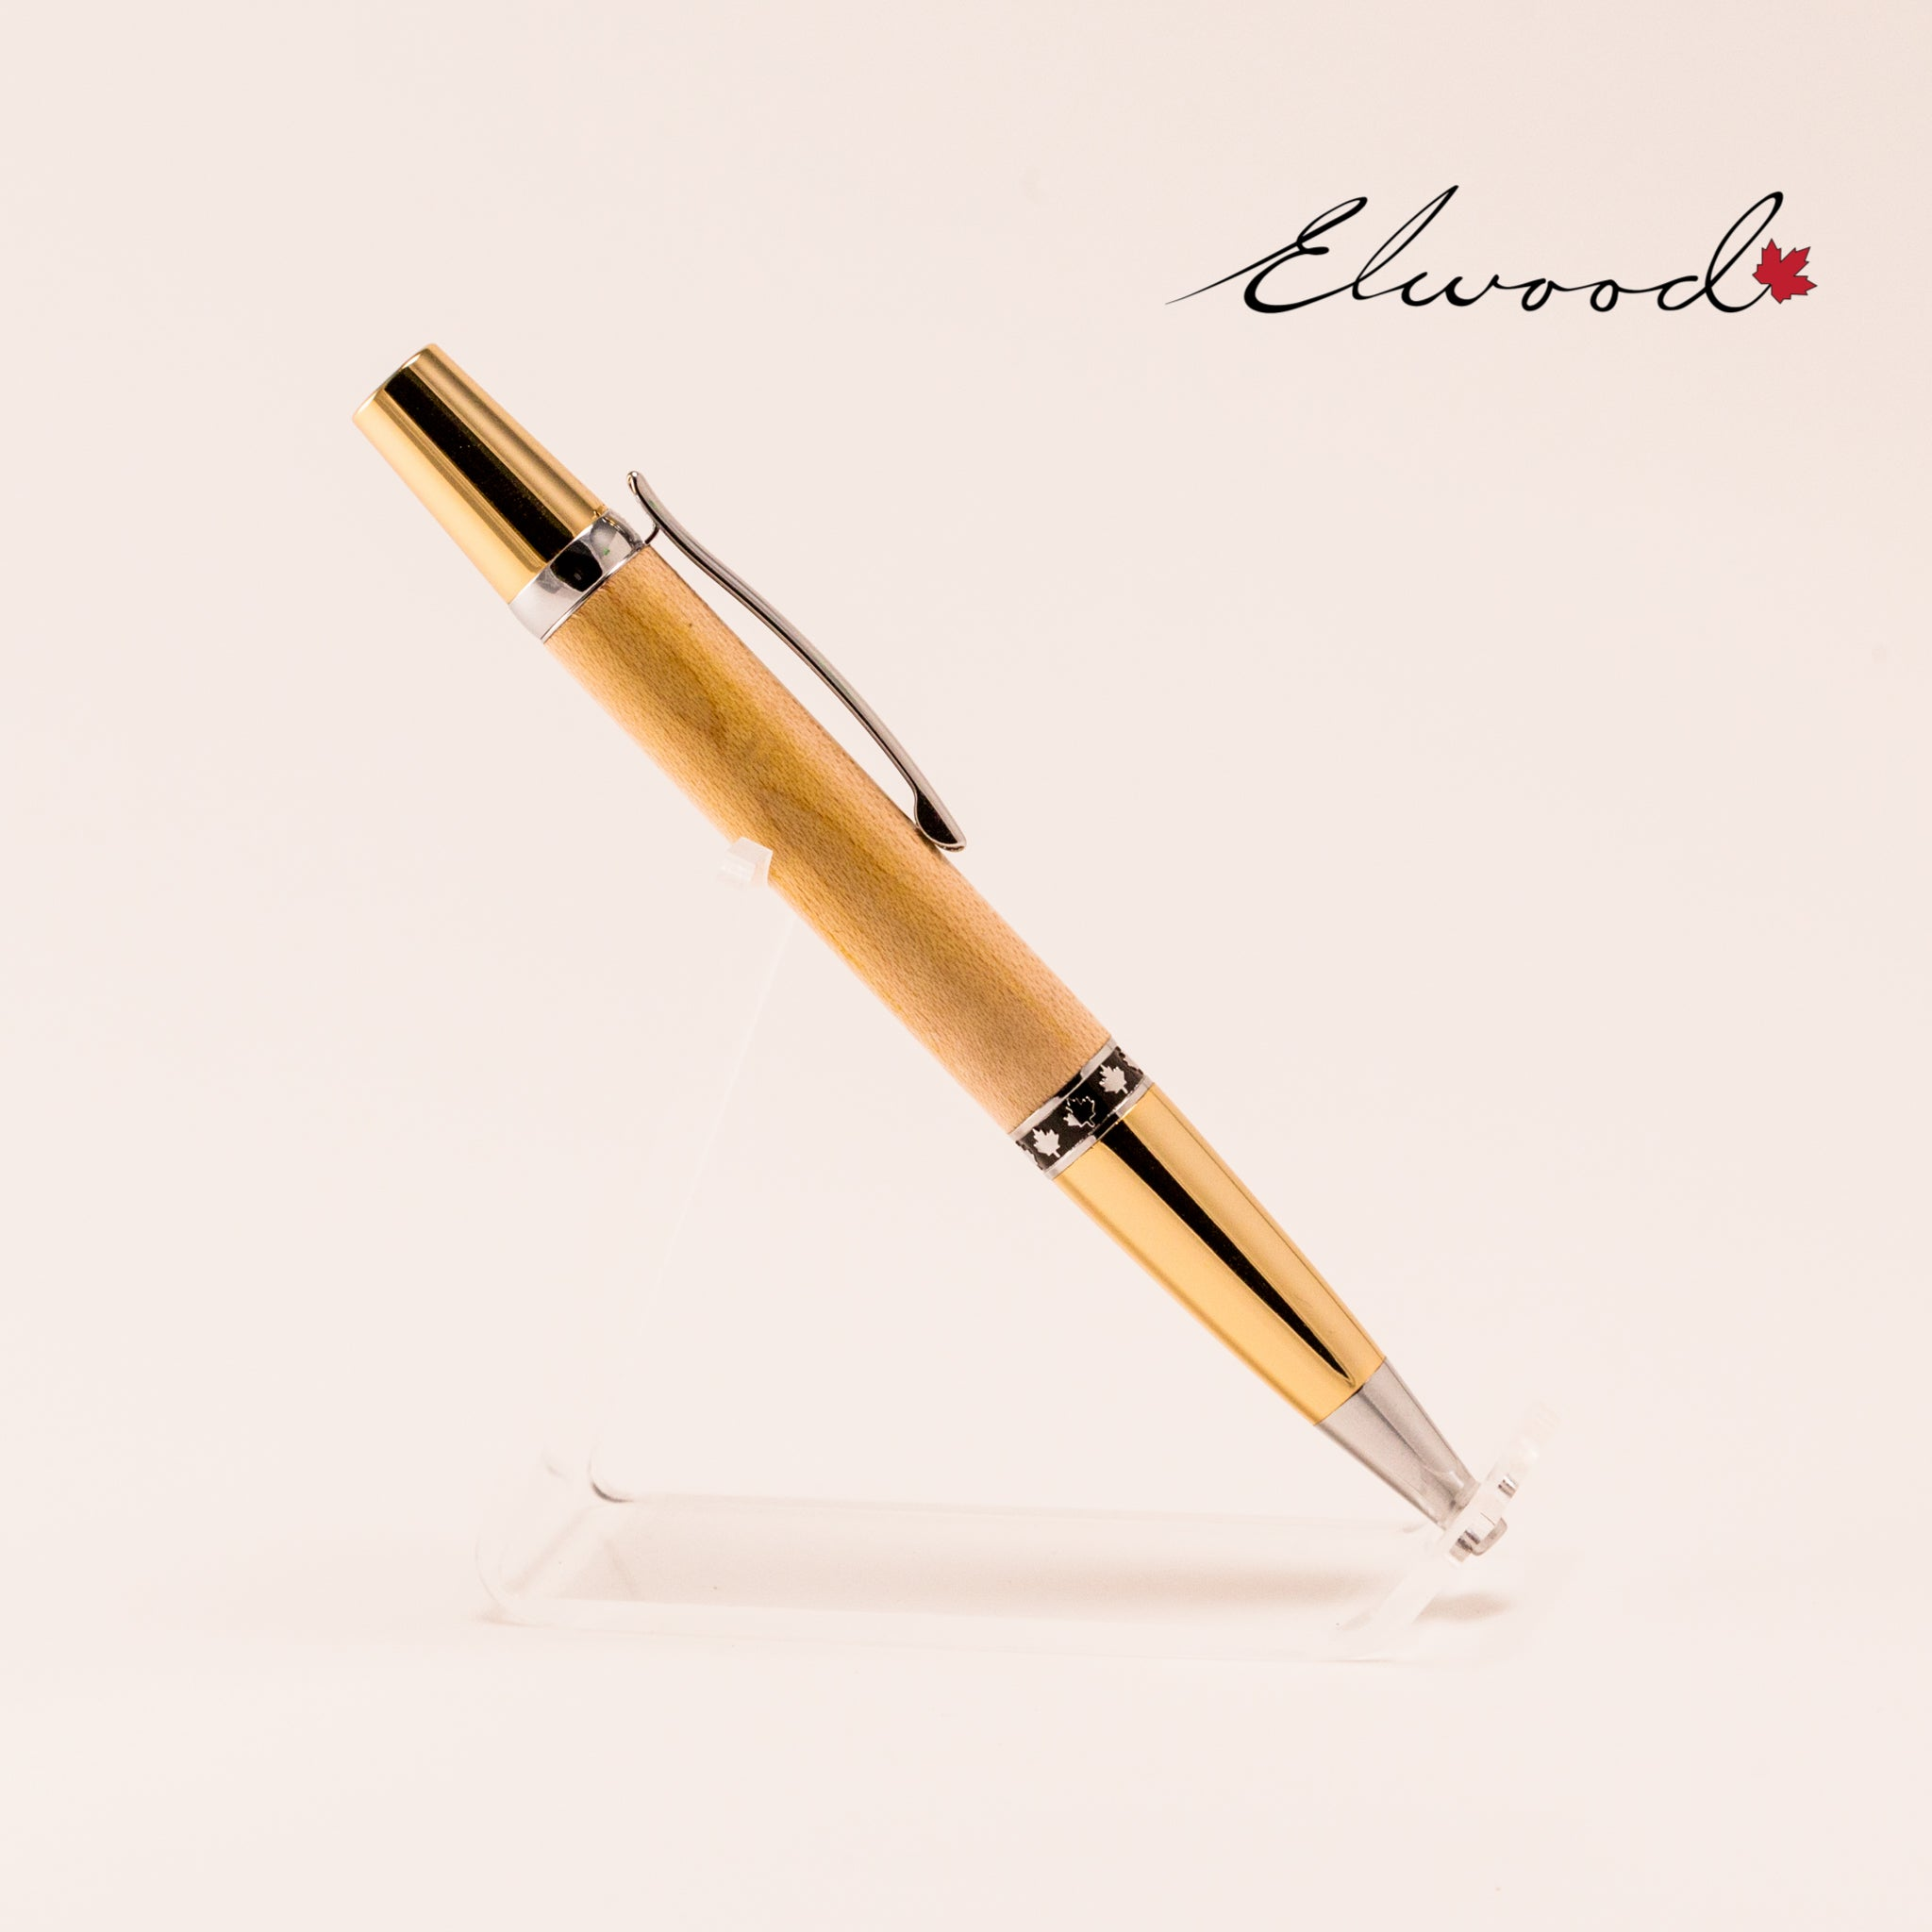 Maple Leaf twist pen upright slanting left